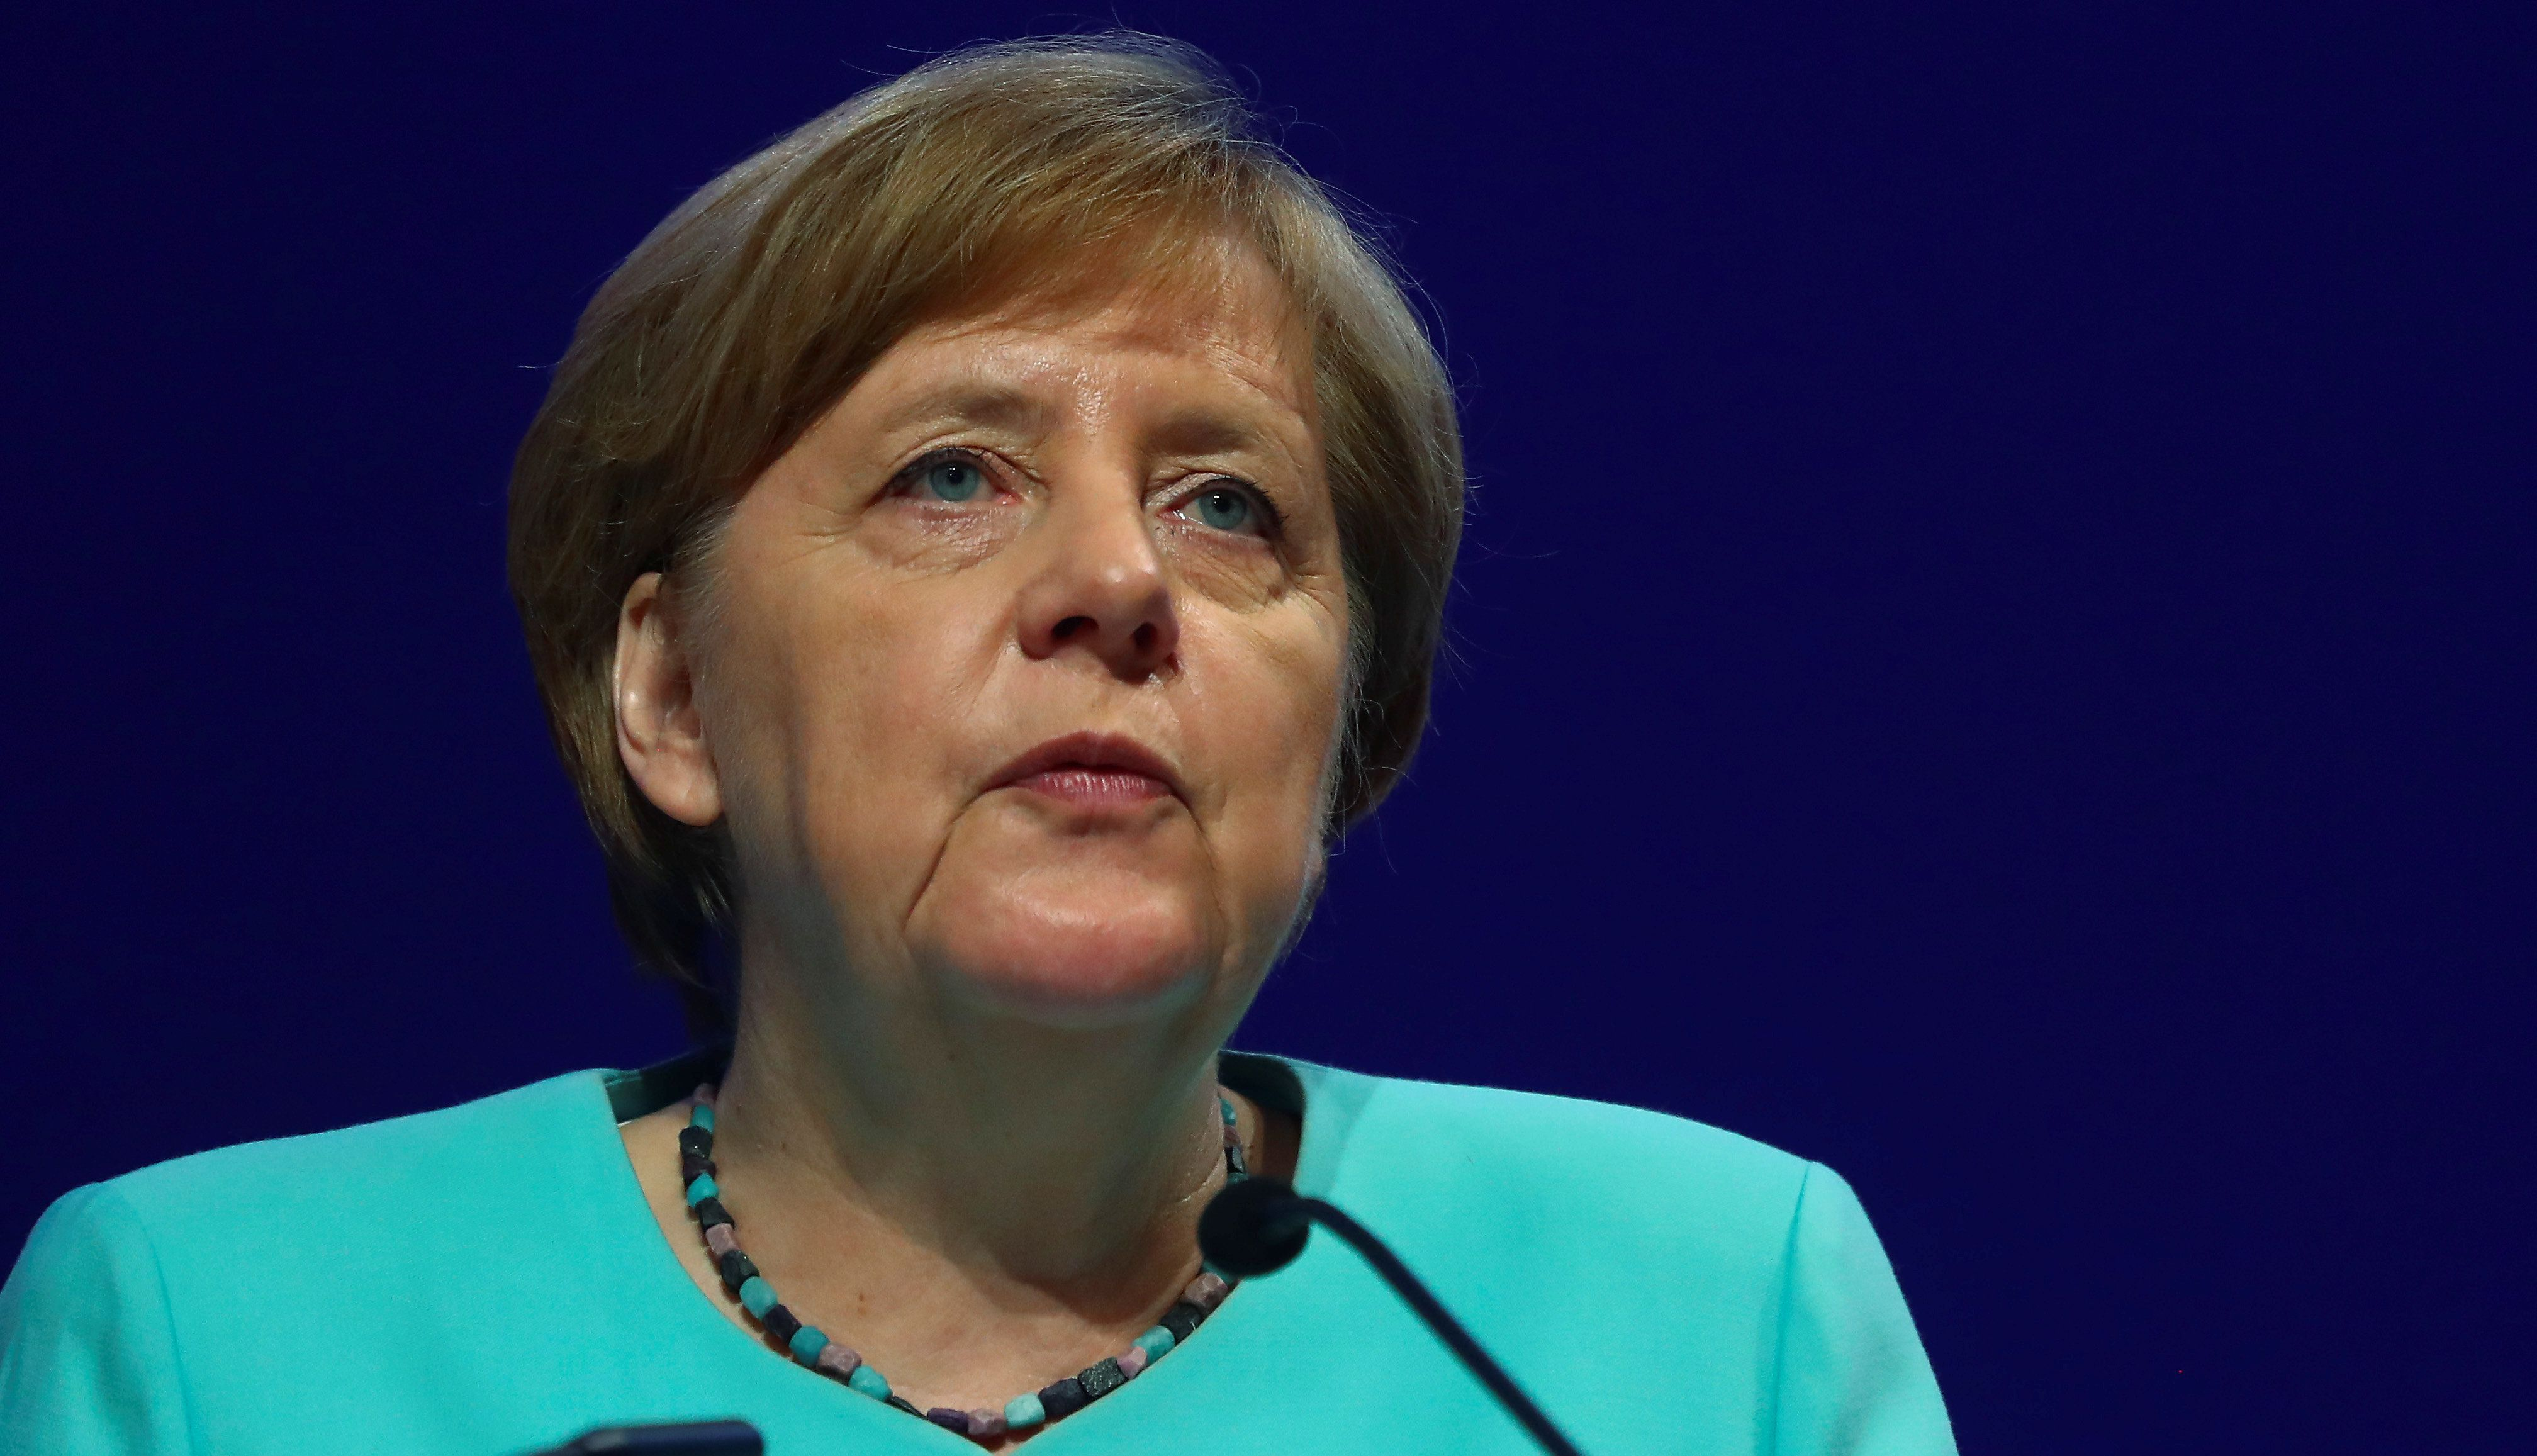 Angela Merkel says a visit to a lesbian couple changed her stance on gay